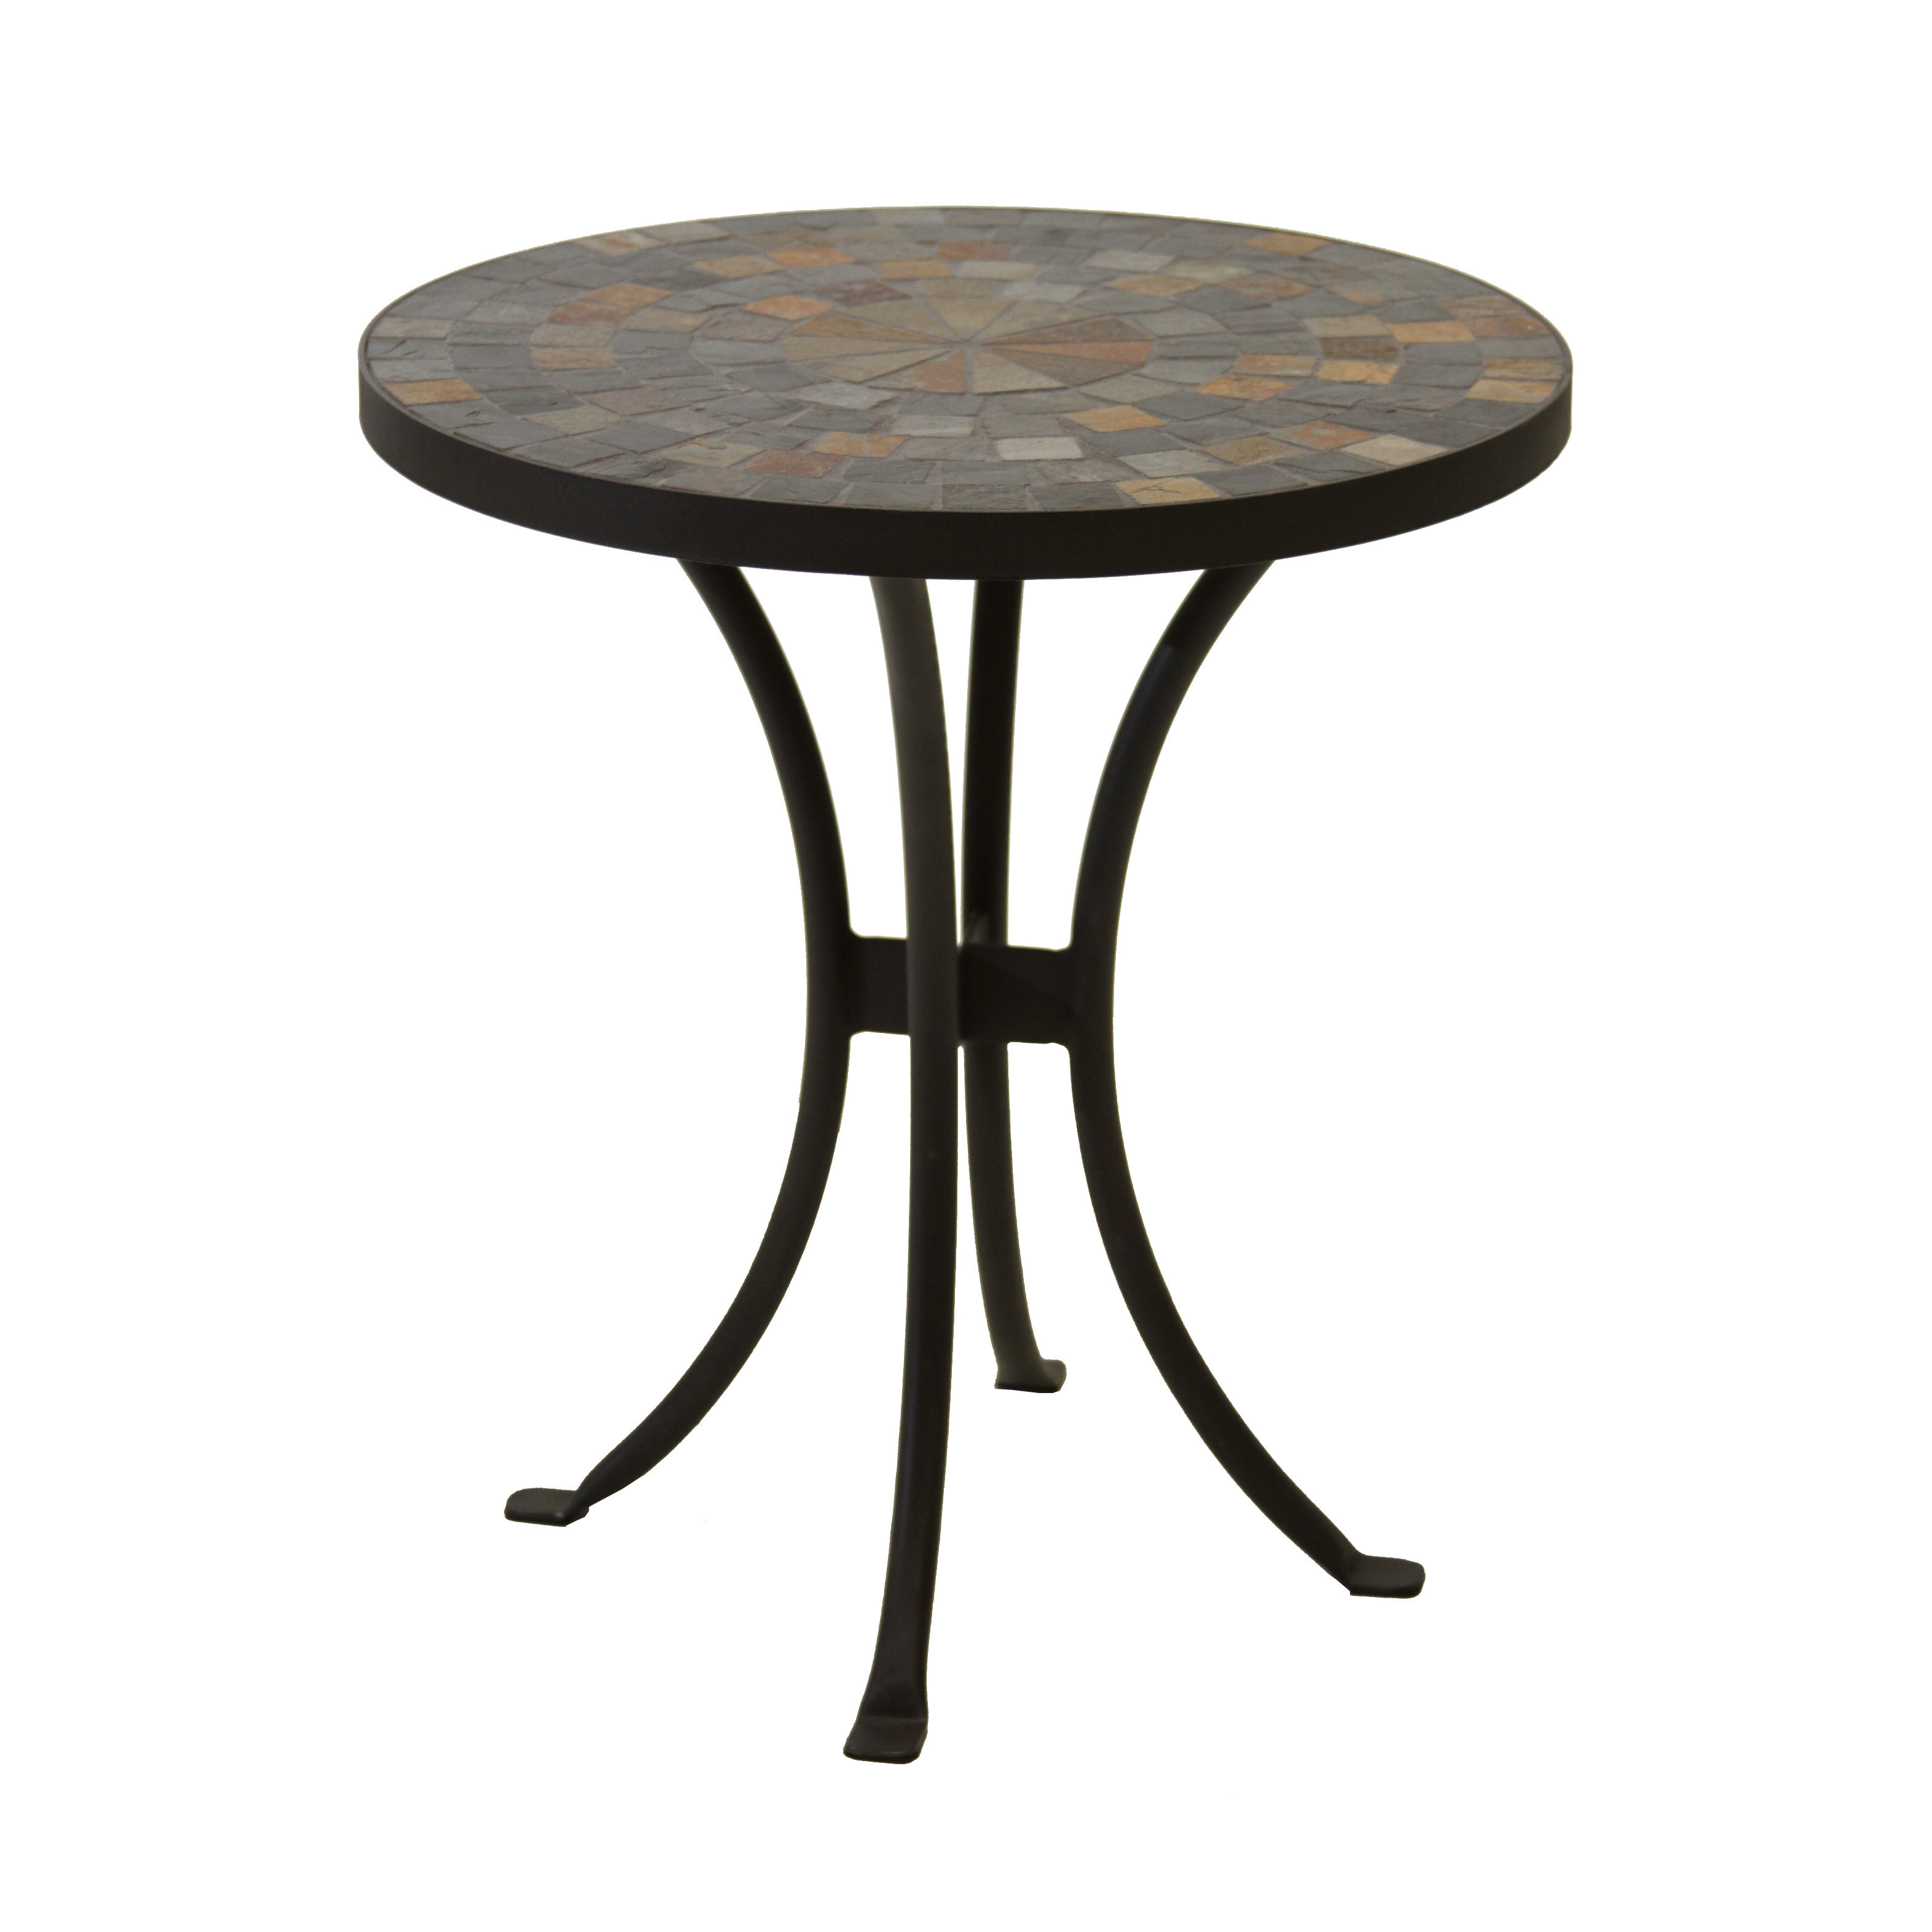 fancy crank amp patioumbrella table outdoor umbrella patio wonderful furniture accent umbrellas wells also adorable serving oval coffee plans burlap tablecloth contemporary end